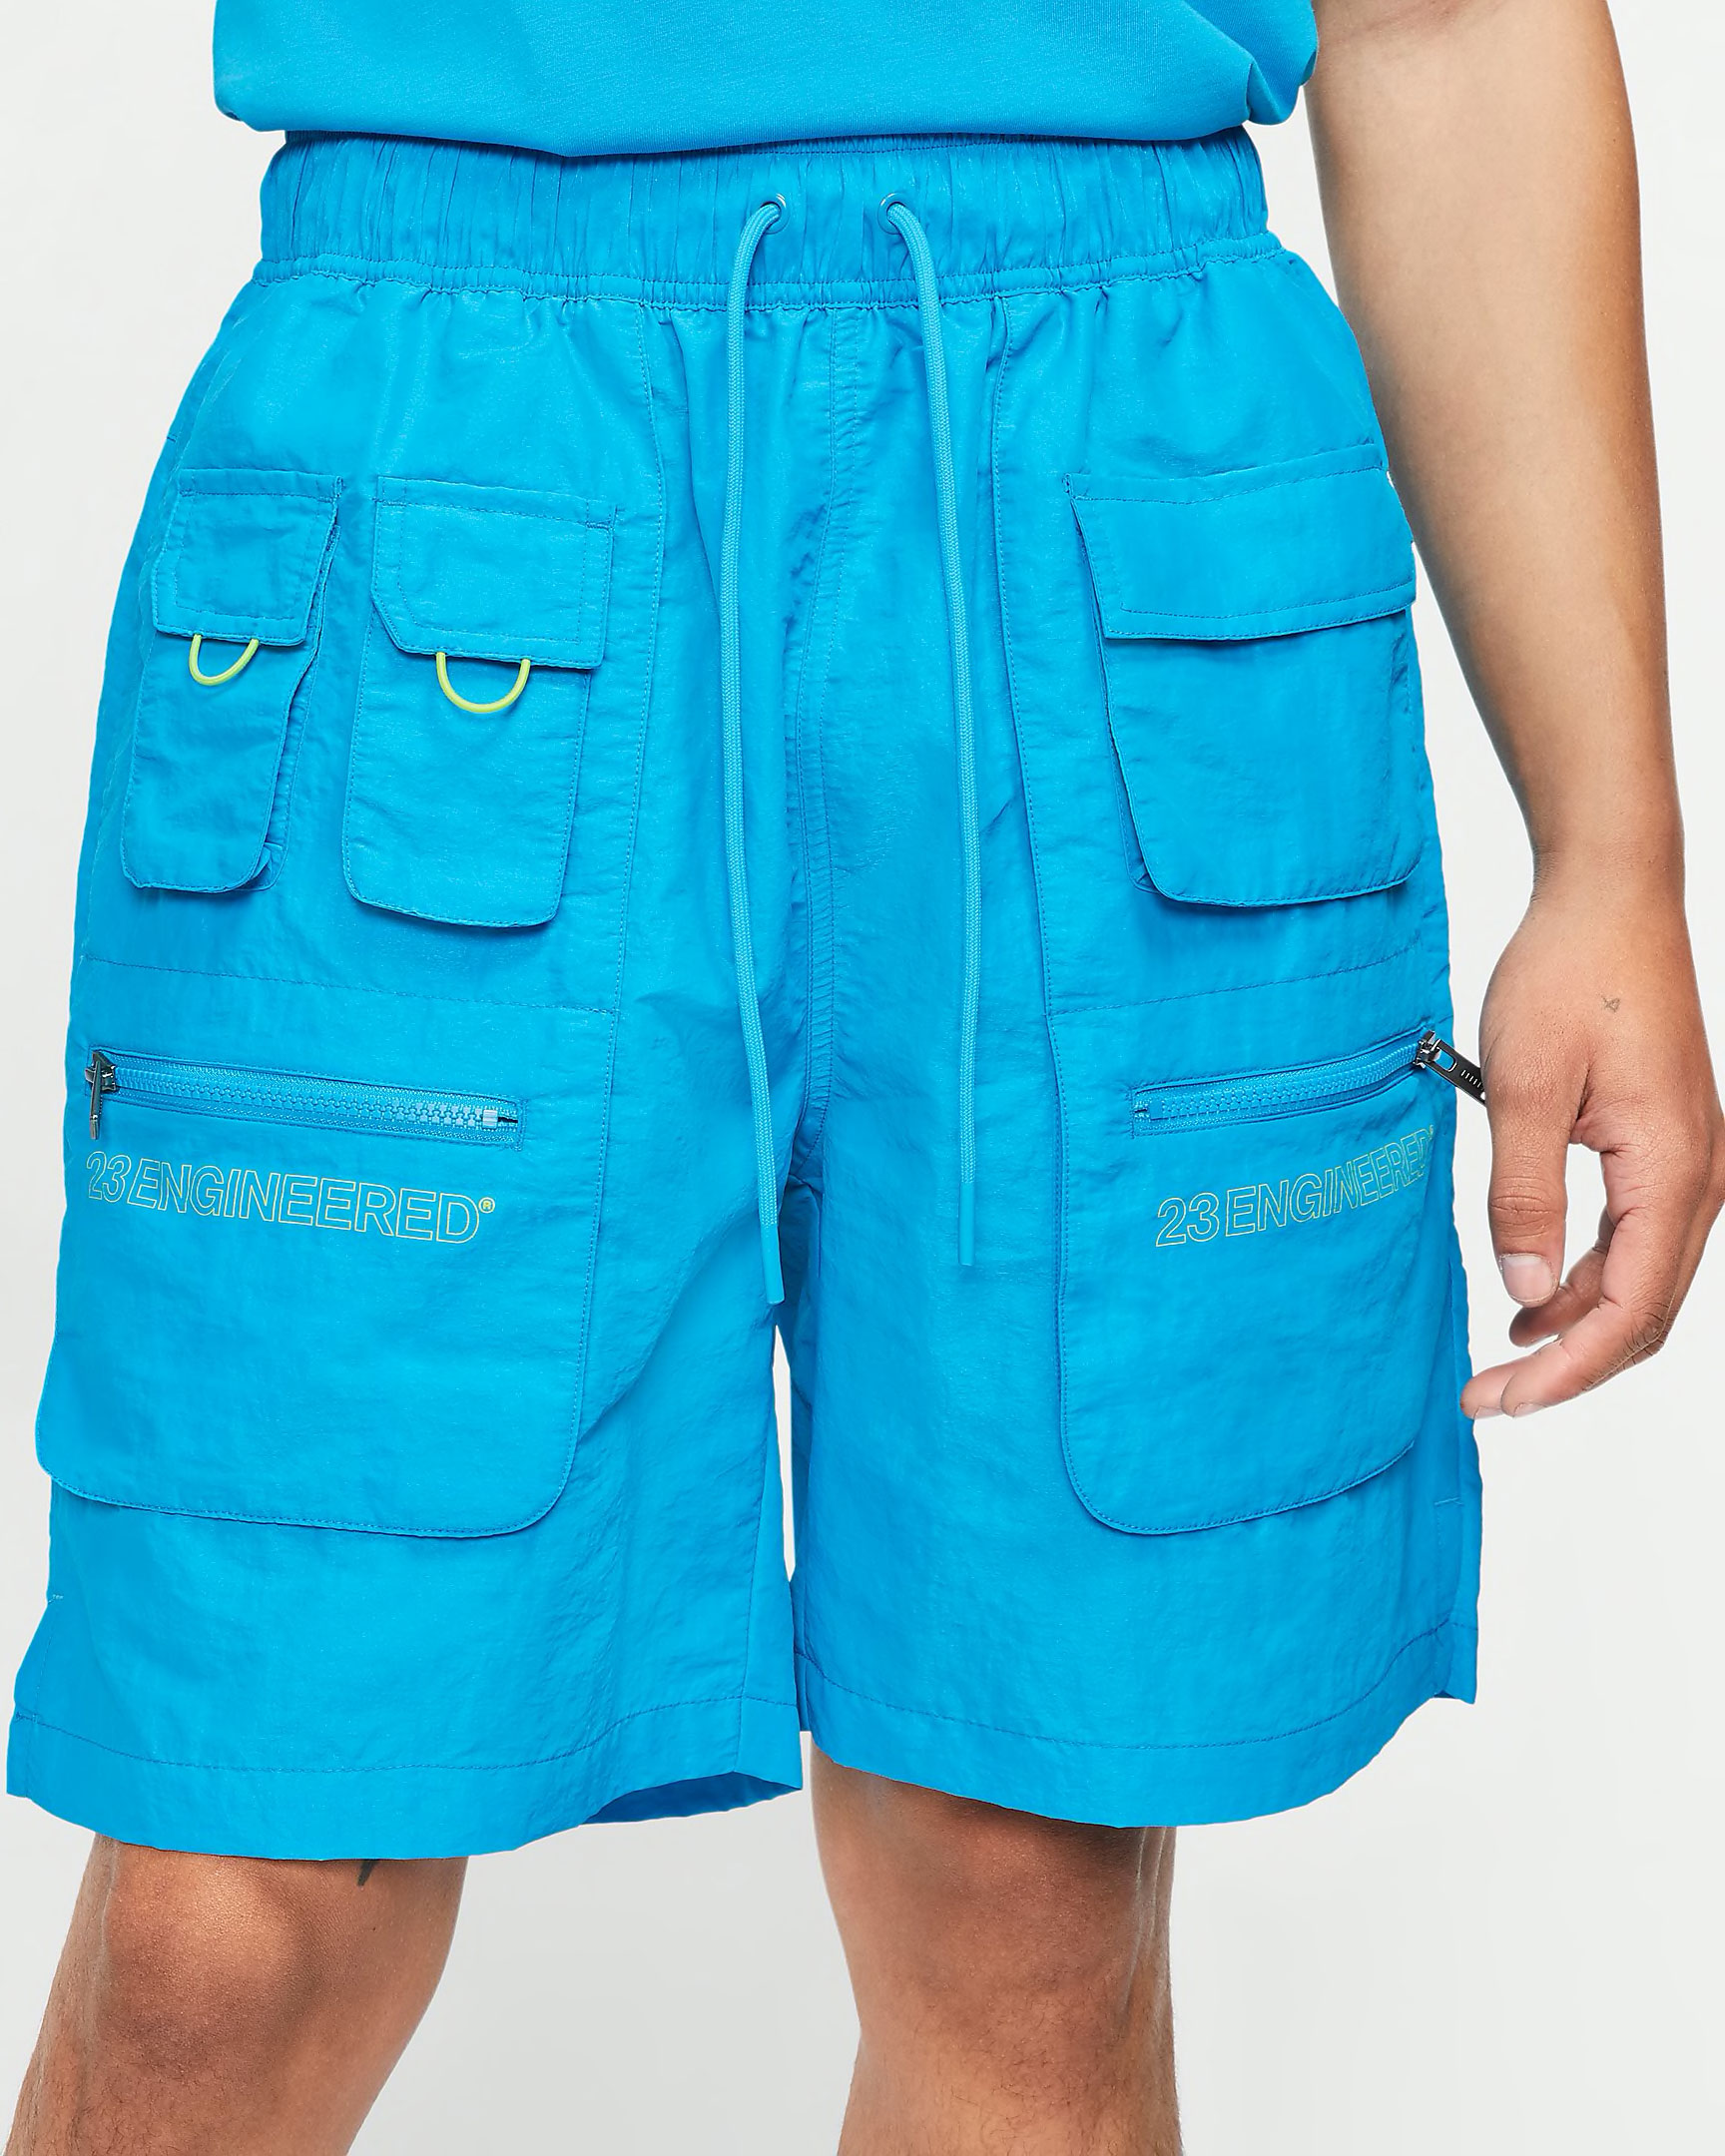 jordan-23-engineered-shorts-blue-green-1